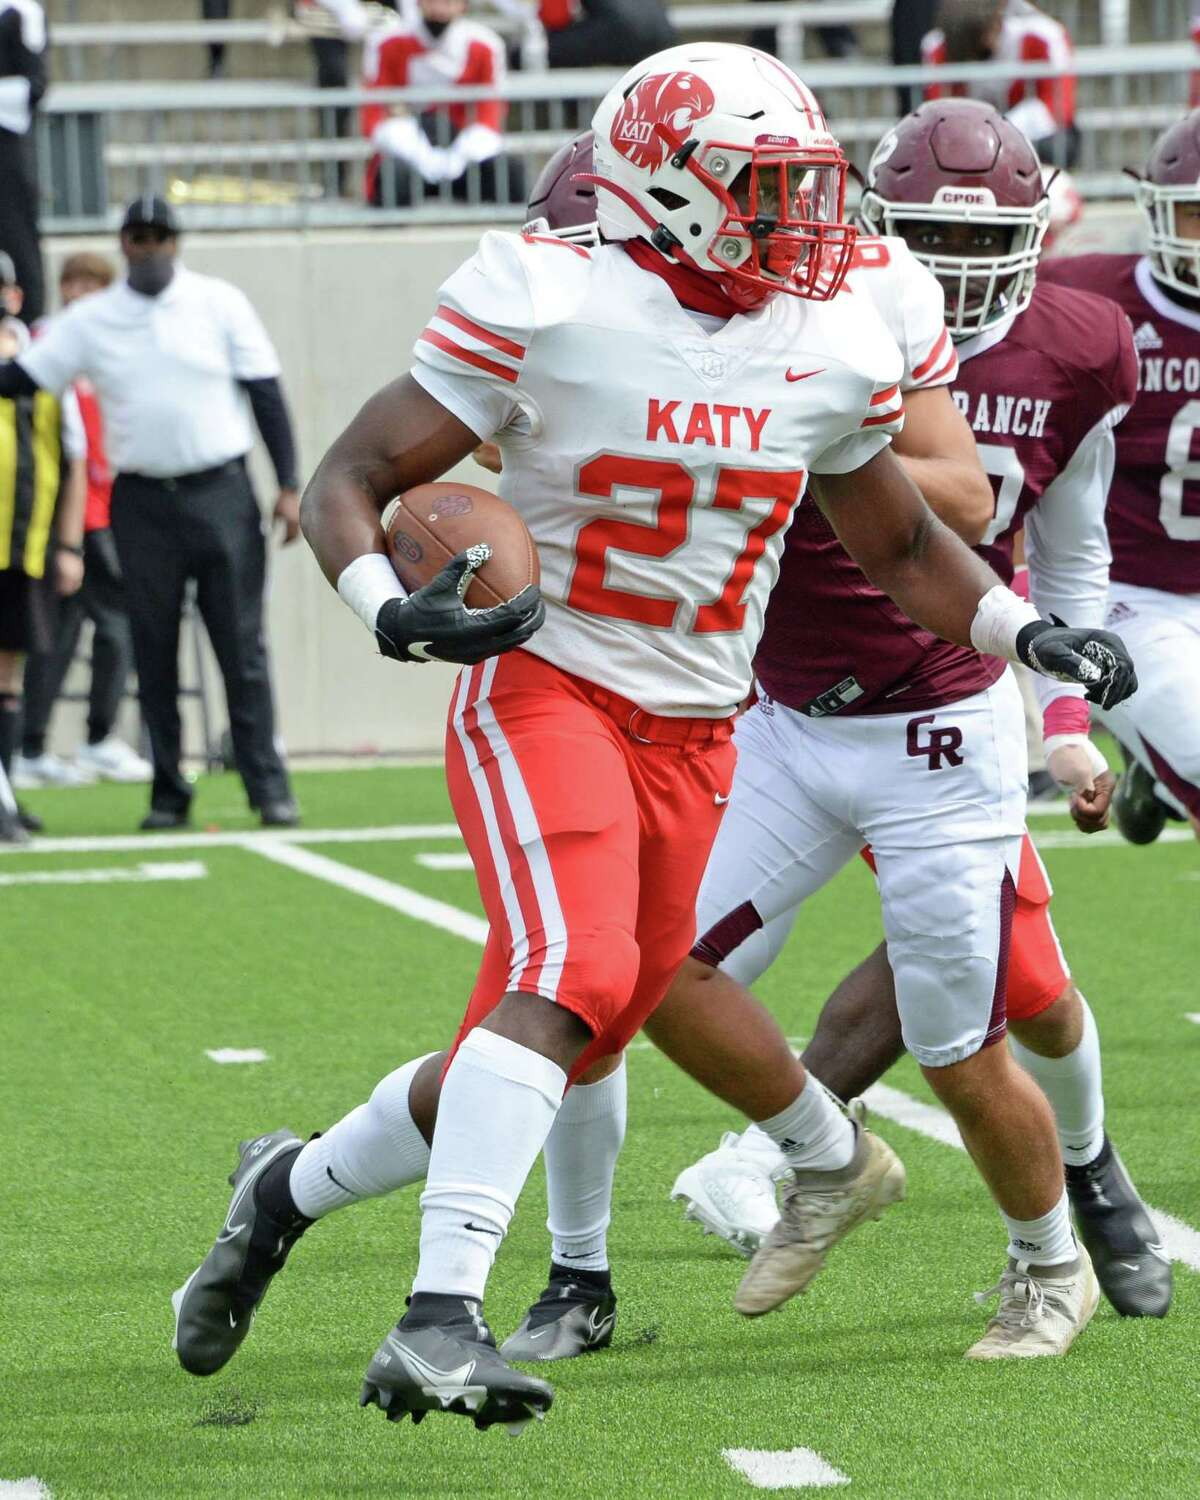 Derrick Williams (27) of Katy carries the ball during the fourth quarter of a 19-6A football game between the Cinco Ranch Cougars and the Katy Tigers on Saturday, October 24, 2020 at Legacy Stadium, Katy, TX.